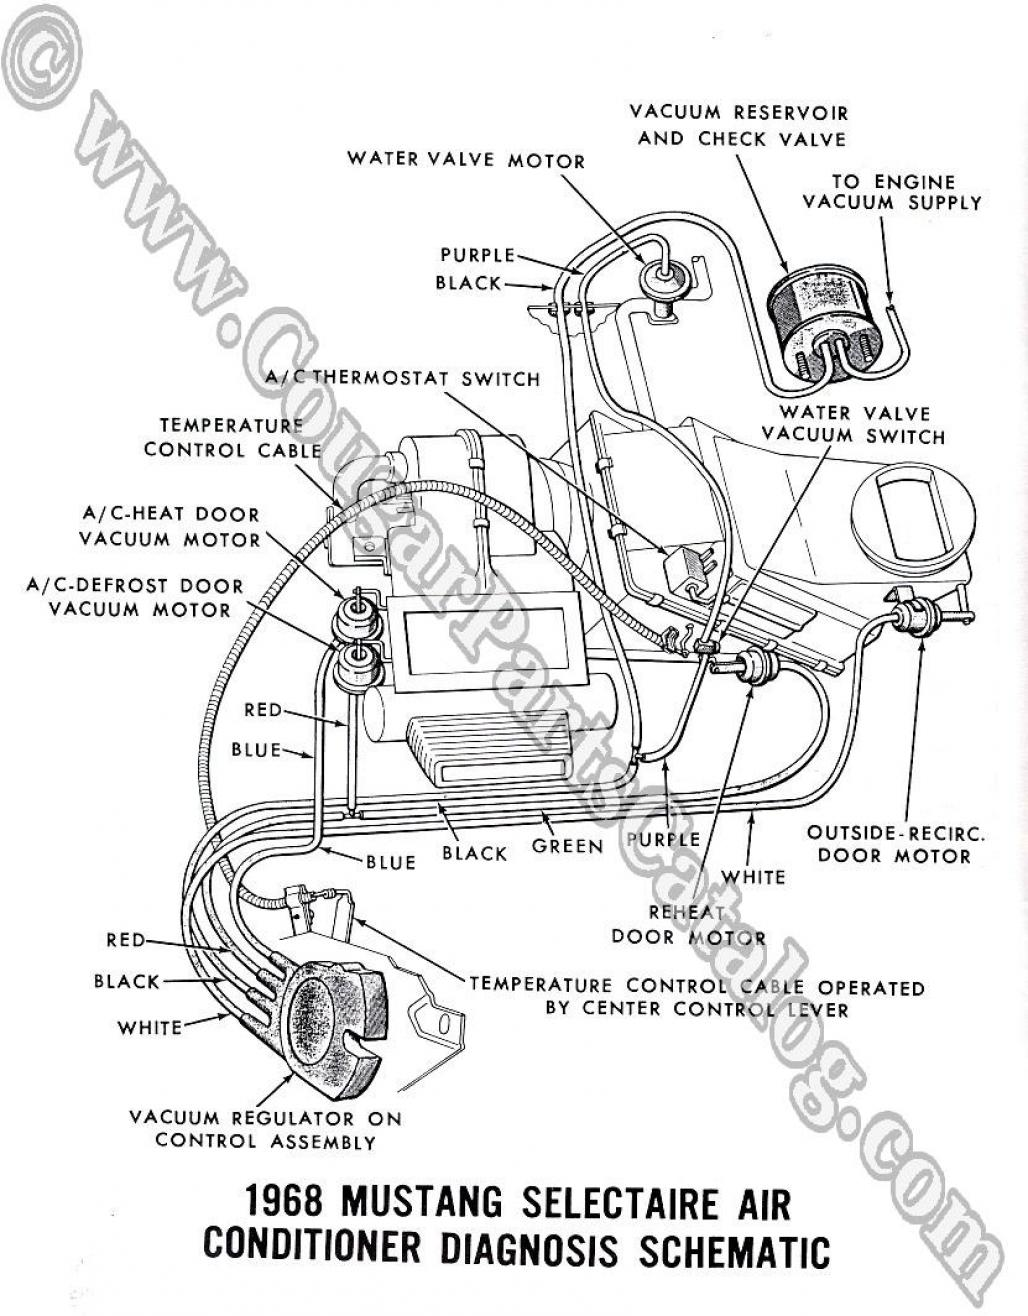 hight resolution of tags mini cooper manual transmission diagram 2004 mini cooper engine diagram mini cooper s engine diagram 04 ford escape exhaust diagram mini cooper s